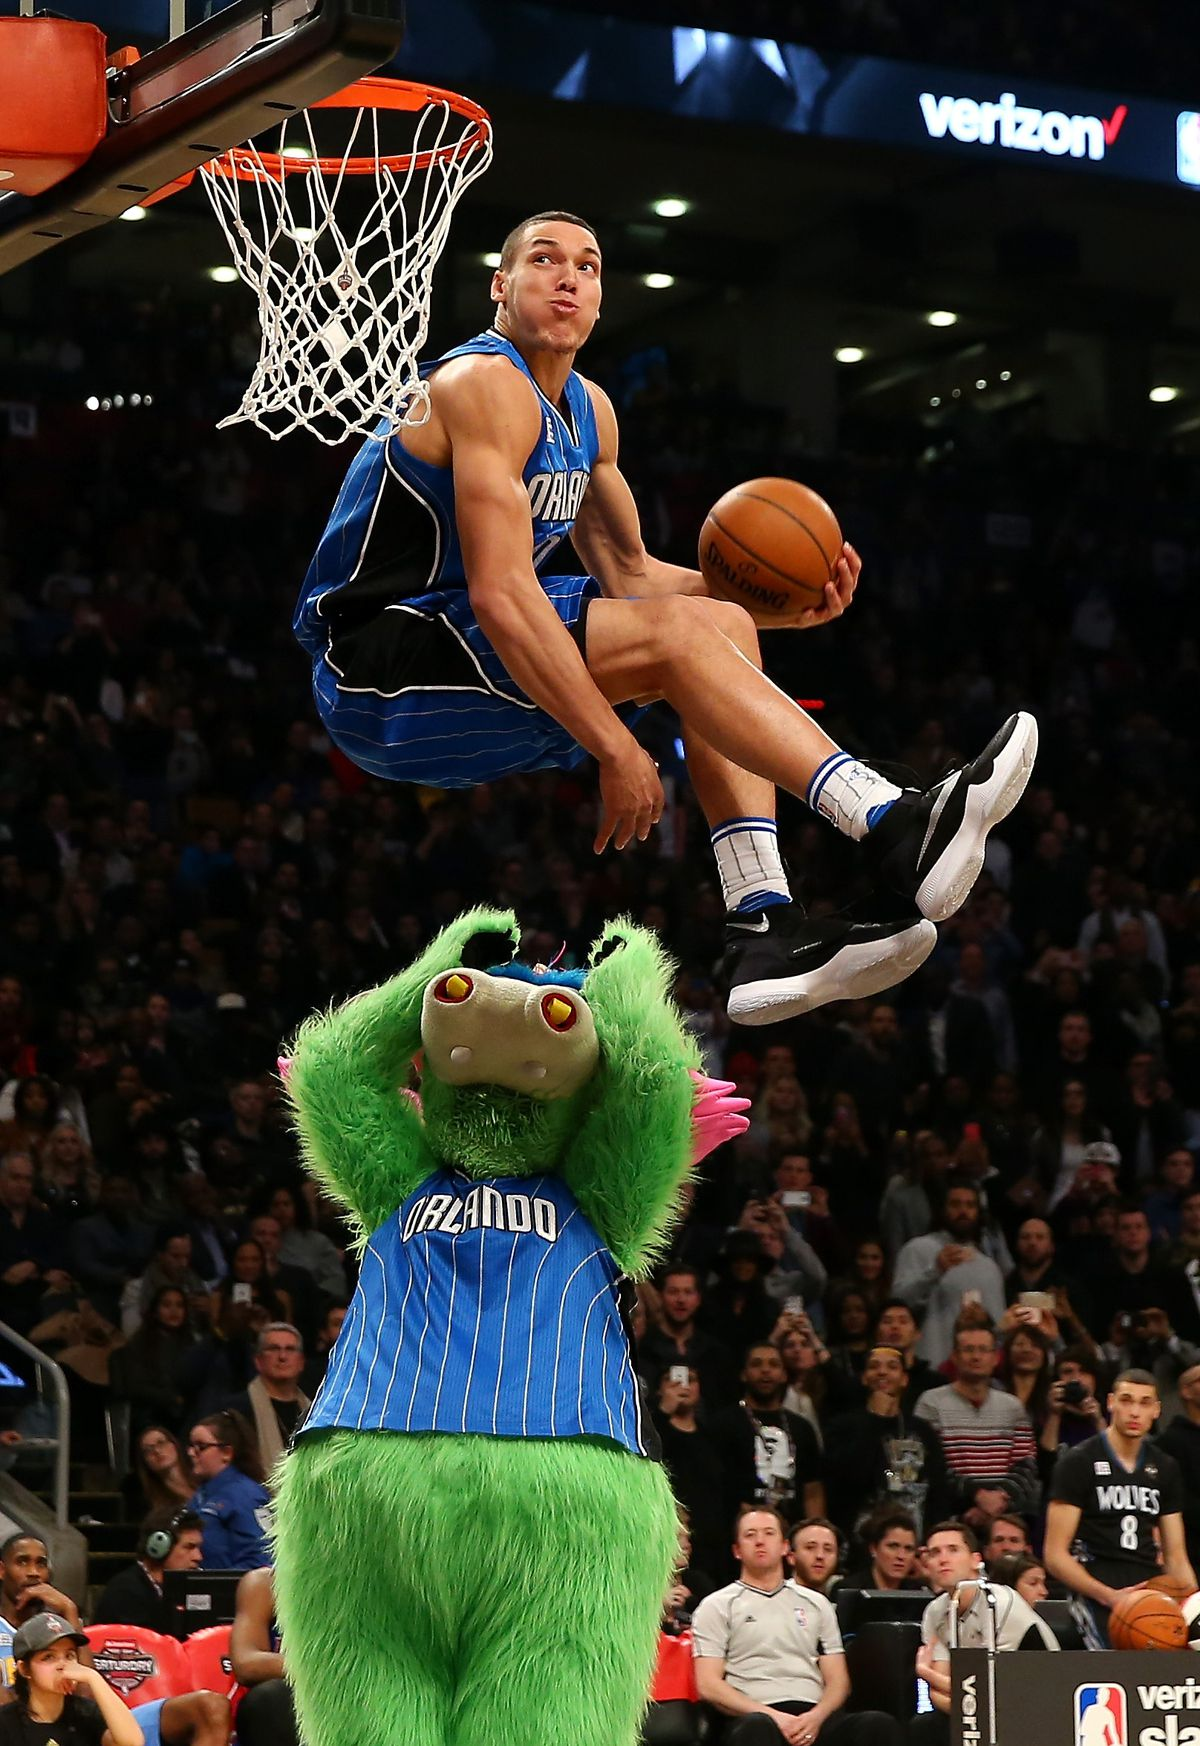 The 2016 NBA Dunk Contest in 7 astonishing photos   SBNationcom 1200x1746